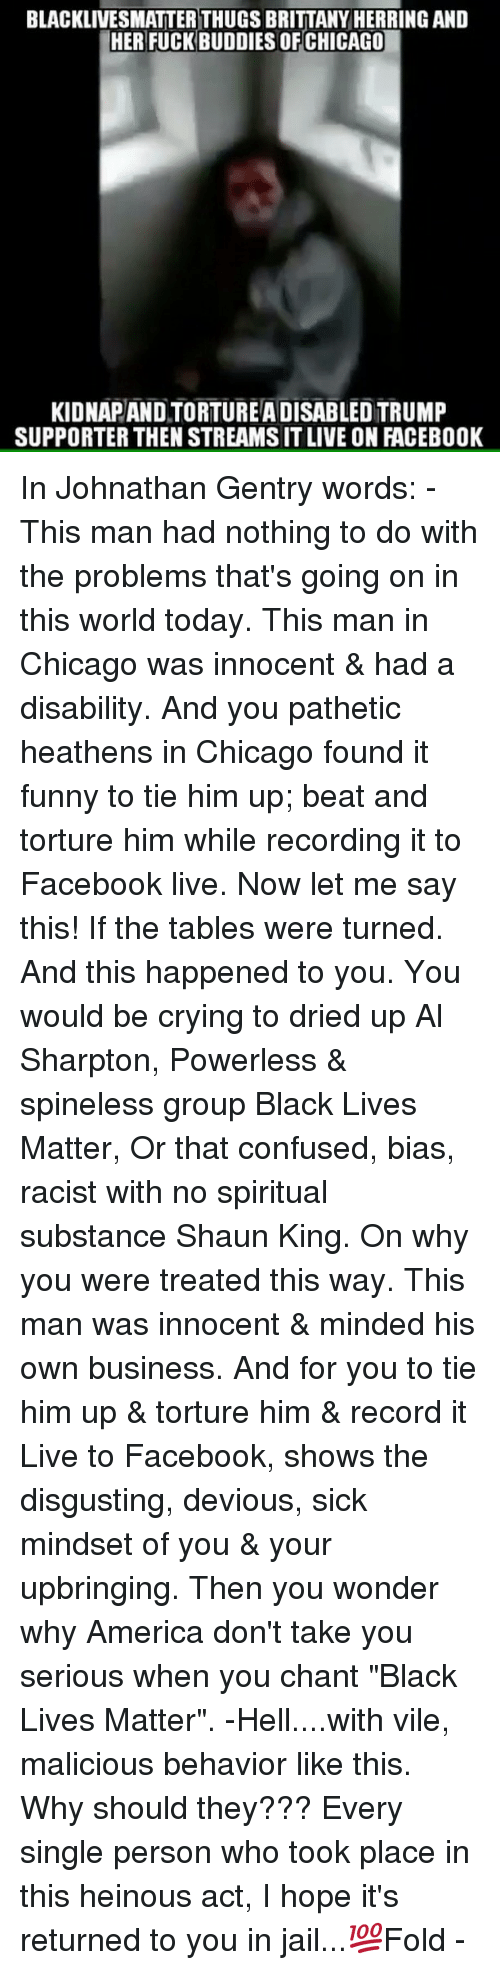 "Trump Support: BLACKLIVESMATTERTHUGS BRITTANY HERRING AND  HER FUCK BUDDIES OF CHICAGO  KIDNAPANDTORTUREADISABLED TRUMP  SUPPORTER THEN STREAMSITLIVE ON FACEBOOK In Johnathan Gentry words: - This man had nothing to do with the problems that's going on in this world today. This man in Chicago was innocent & had a disability. And you pathetic heathens in Chicago found it funny to tie him up; beat and torture him while recording it to Facebook live. Now let me say this! If the tables were turned. And this happened to you. You would be crying to dried up Al Sharpton, Powerless & spineless group Black Lives Matter, Or that confused, bias, racist with no spiritual substance Shaun King. On why you were treated this way. This man was innocent & minded his own business. And for you to tie him up & torture him & record it Live to Facebook, shows the disgusting, devious, sick mindset of you & your upbringing. Then you wonder why America don't take you serious when you chant ""Black Lives Matter"". -Hell....with vile, malicious behavior like this. Why should they??? Every single person who took place in this heinous act, I hope it's returned to you in jail...💯Fold -"